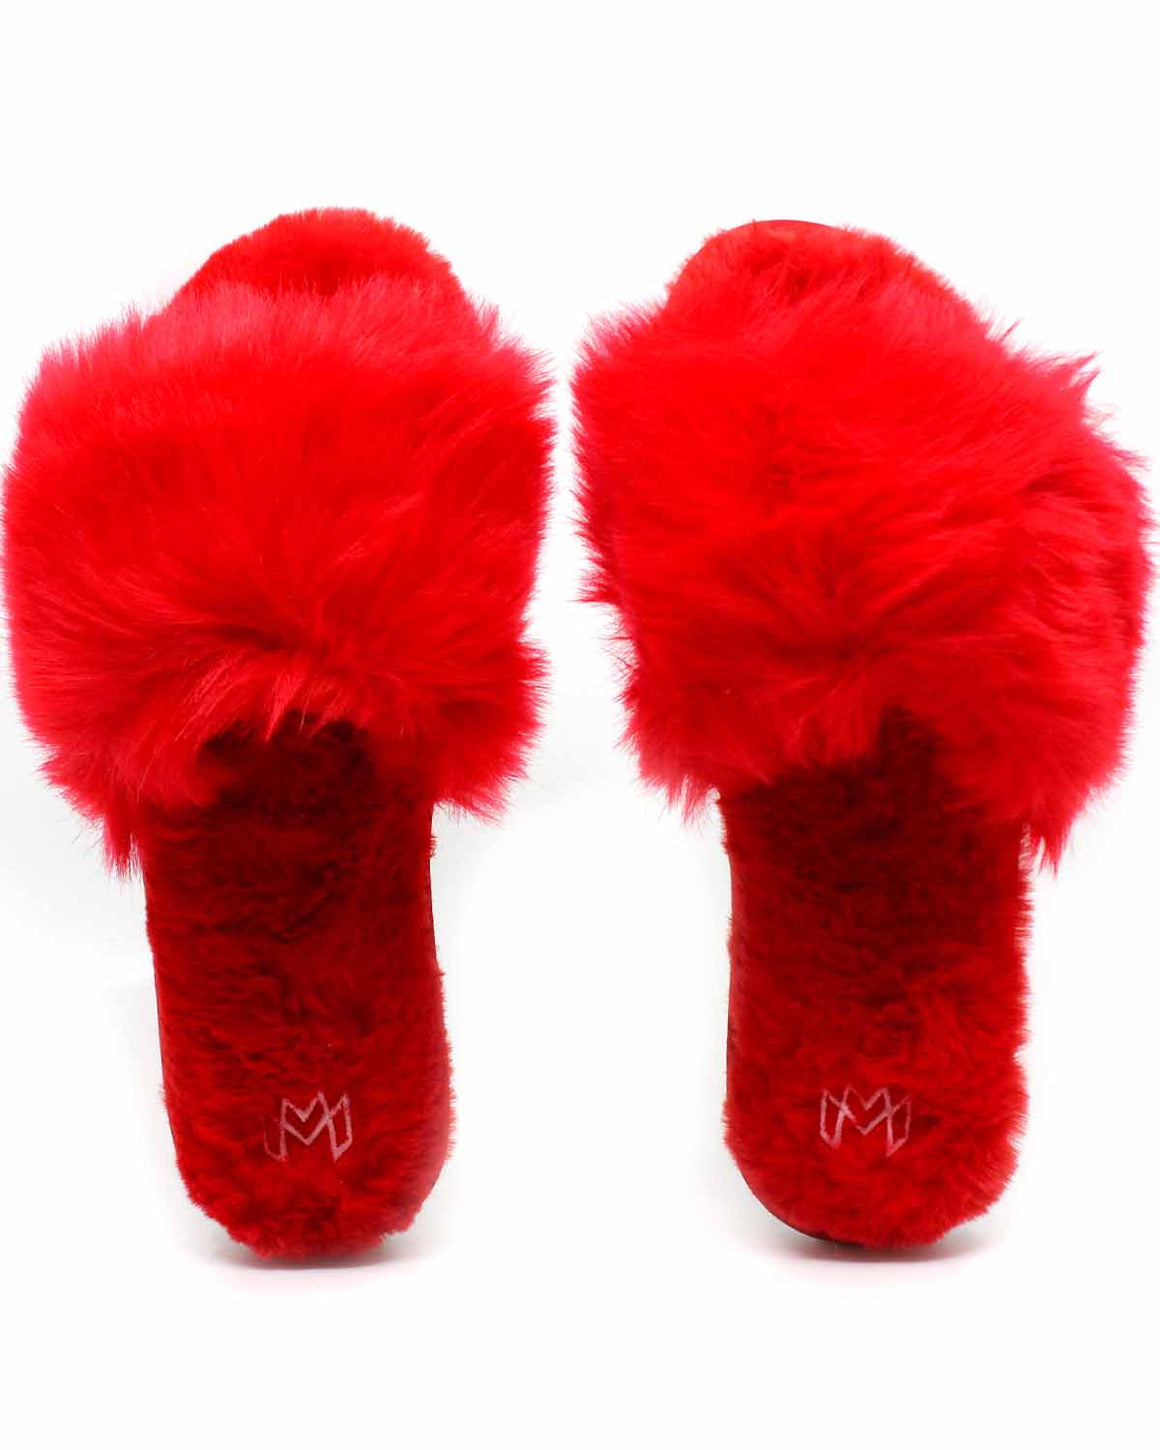 Cupid Slumber Slippers